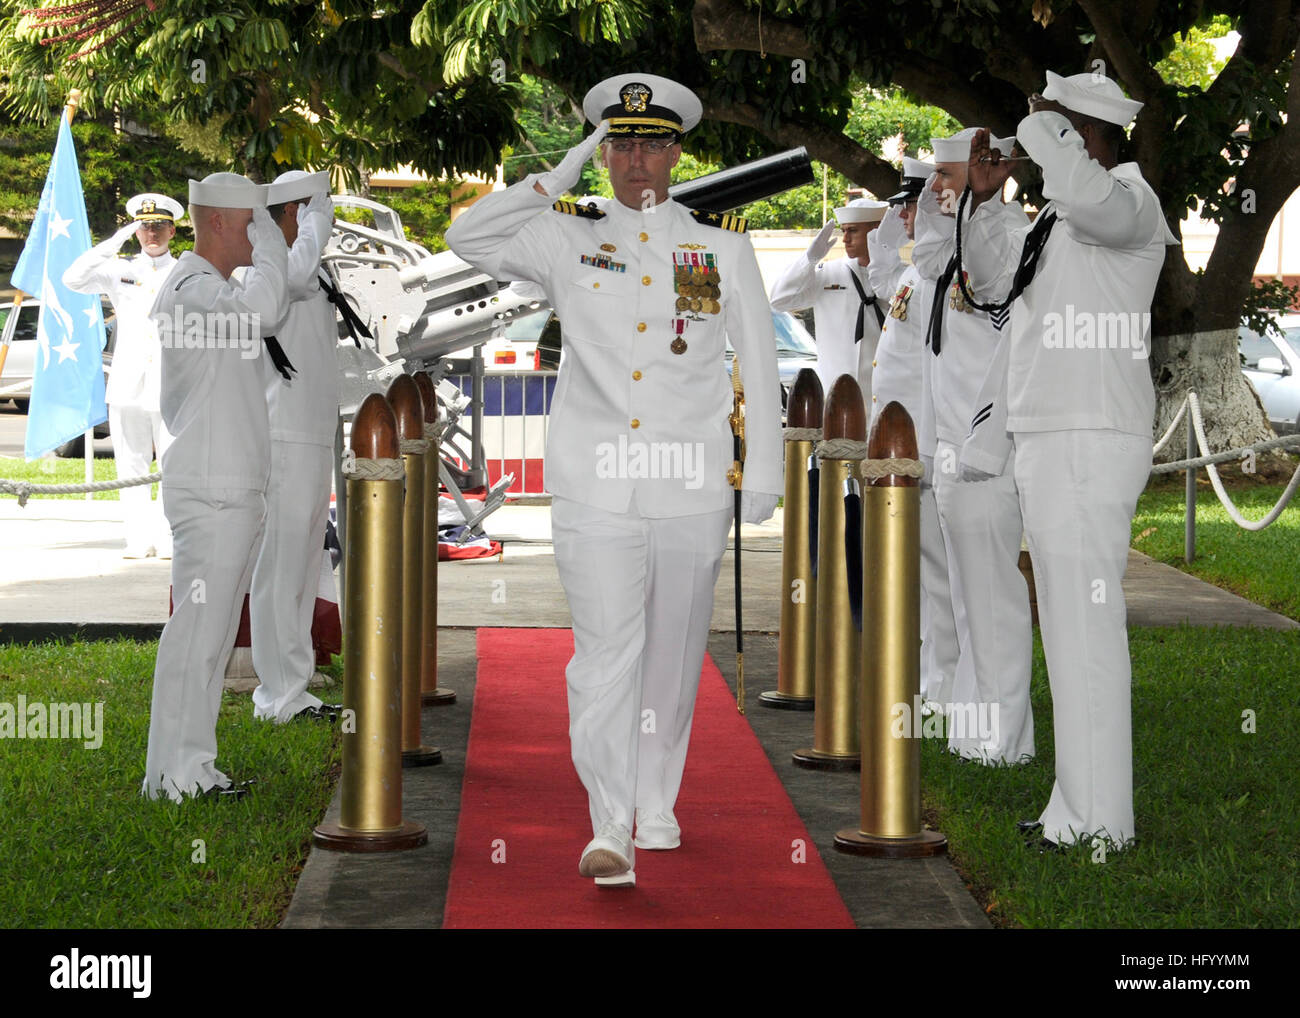 110729-N-UK333-127 